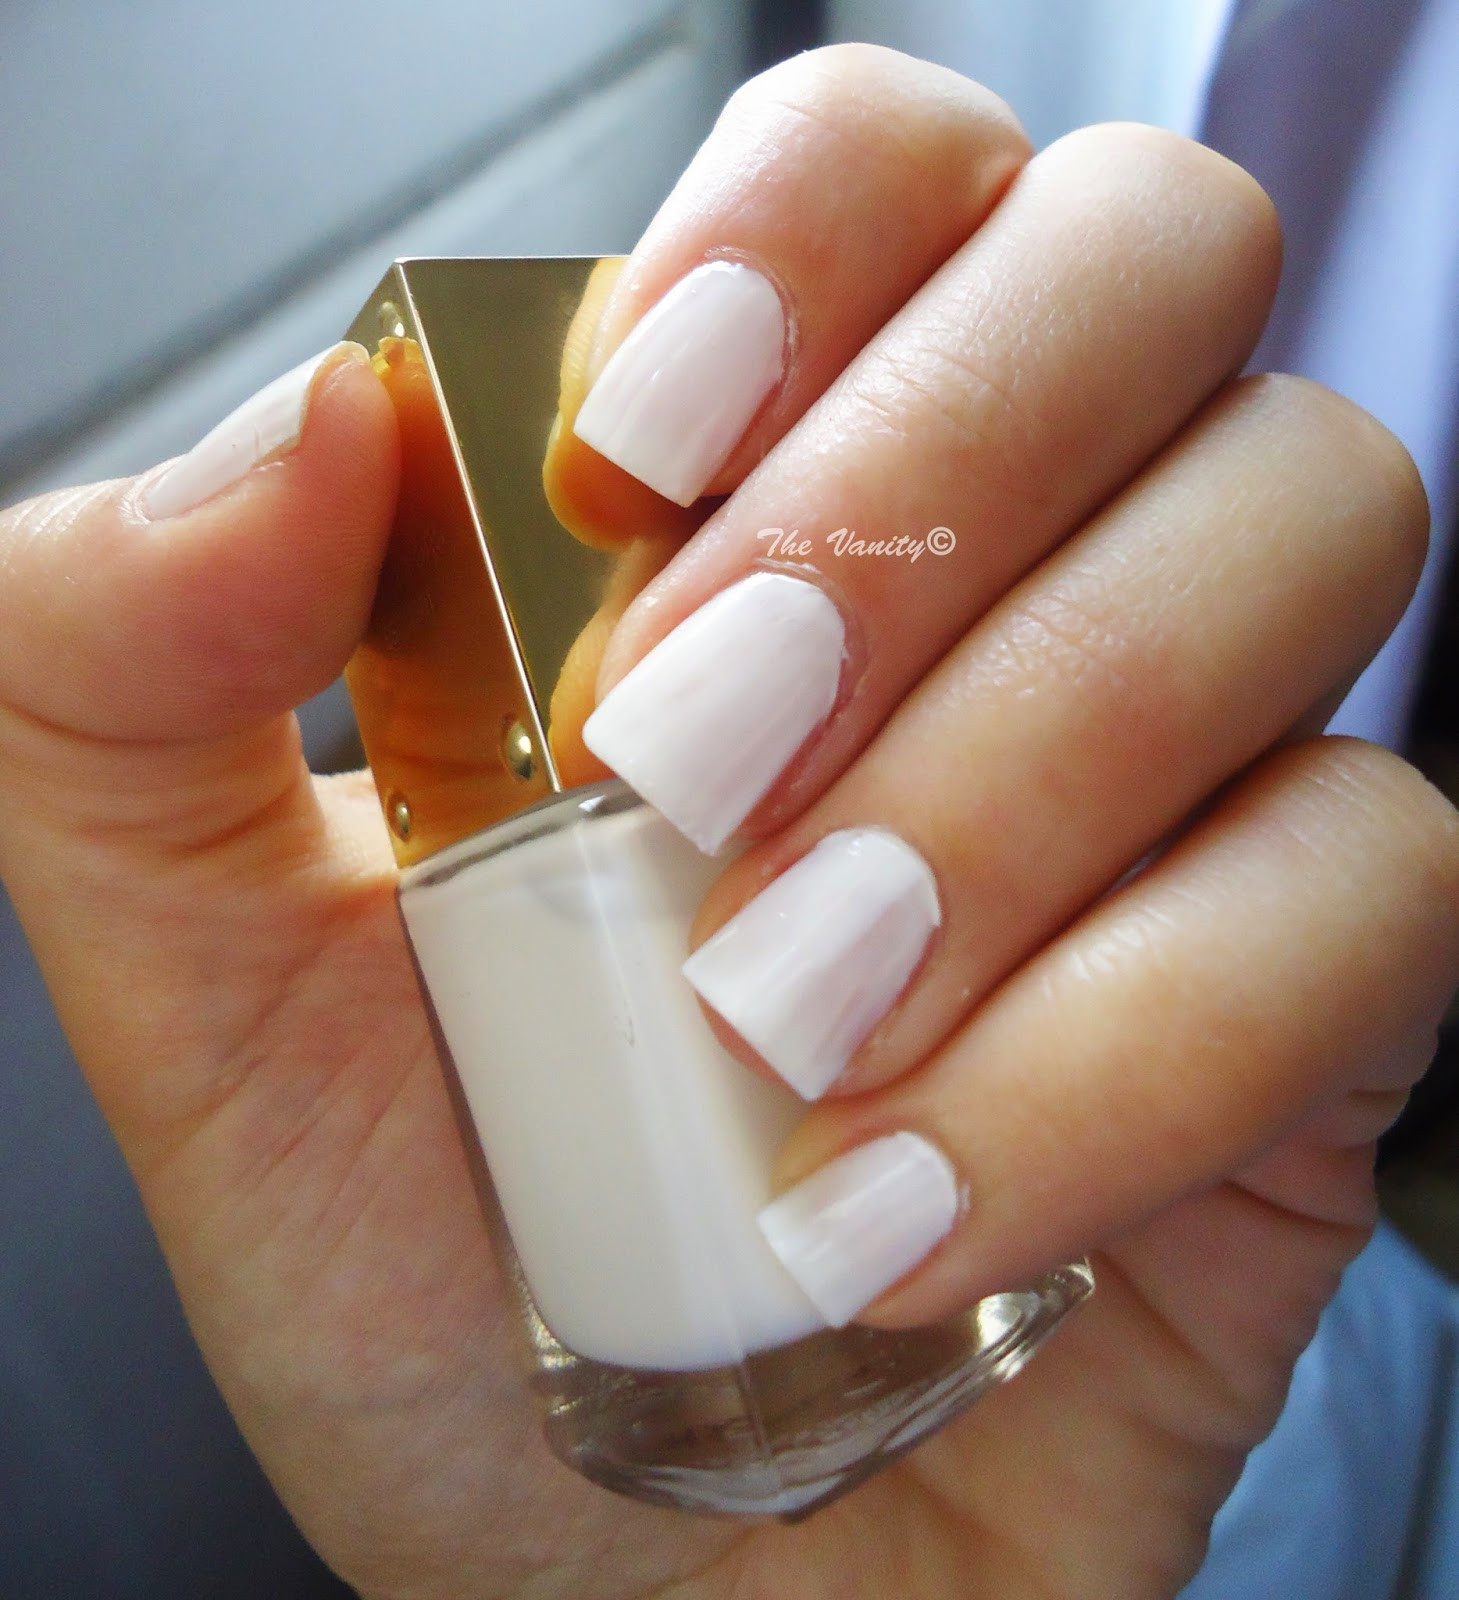 I Am Not A Fan Of The Full Opacity White On My Nails That Is Why Ped With Only Two Coats Which Looked More Feminine To Me